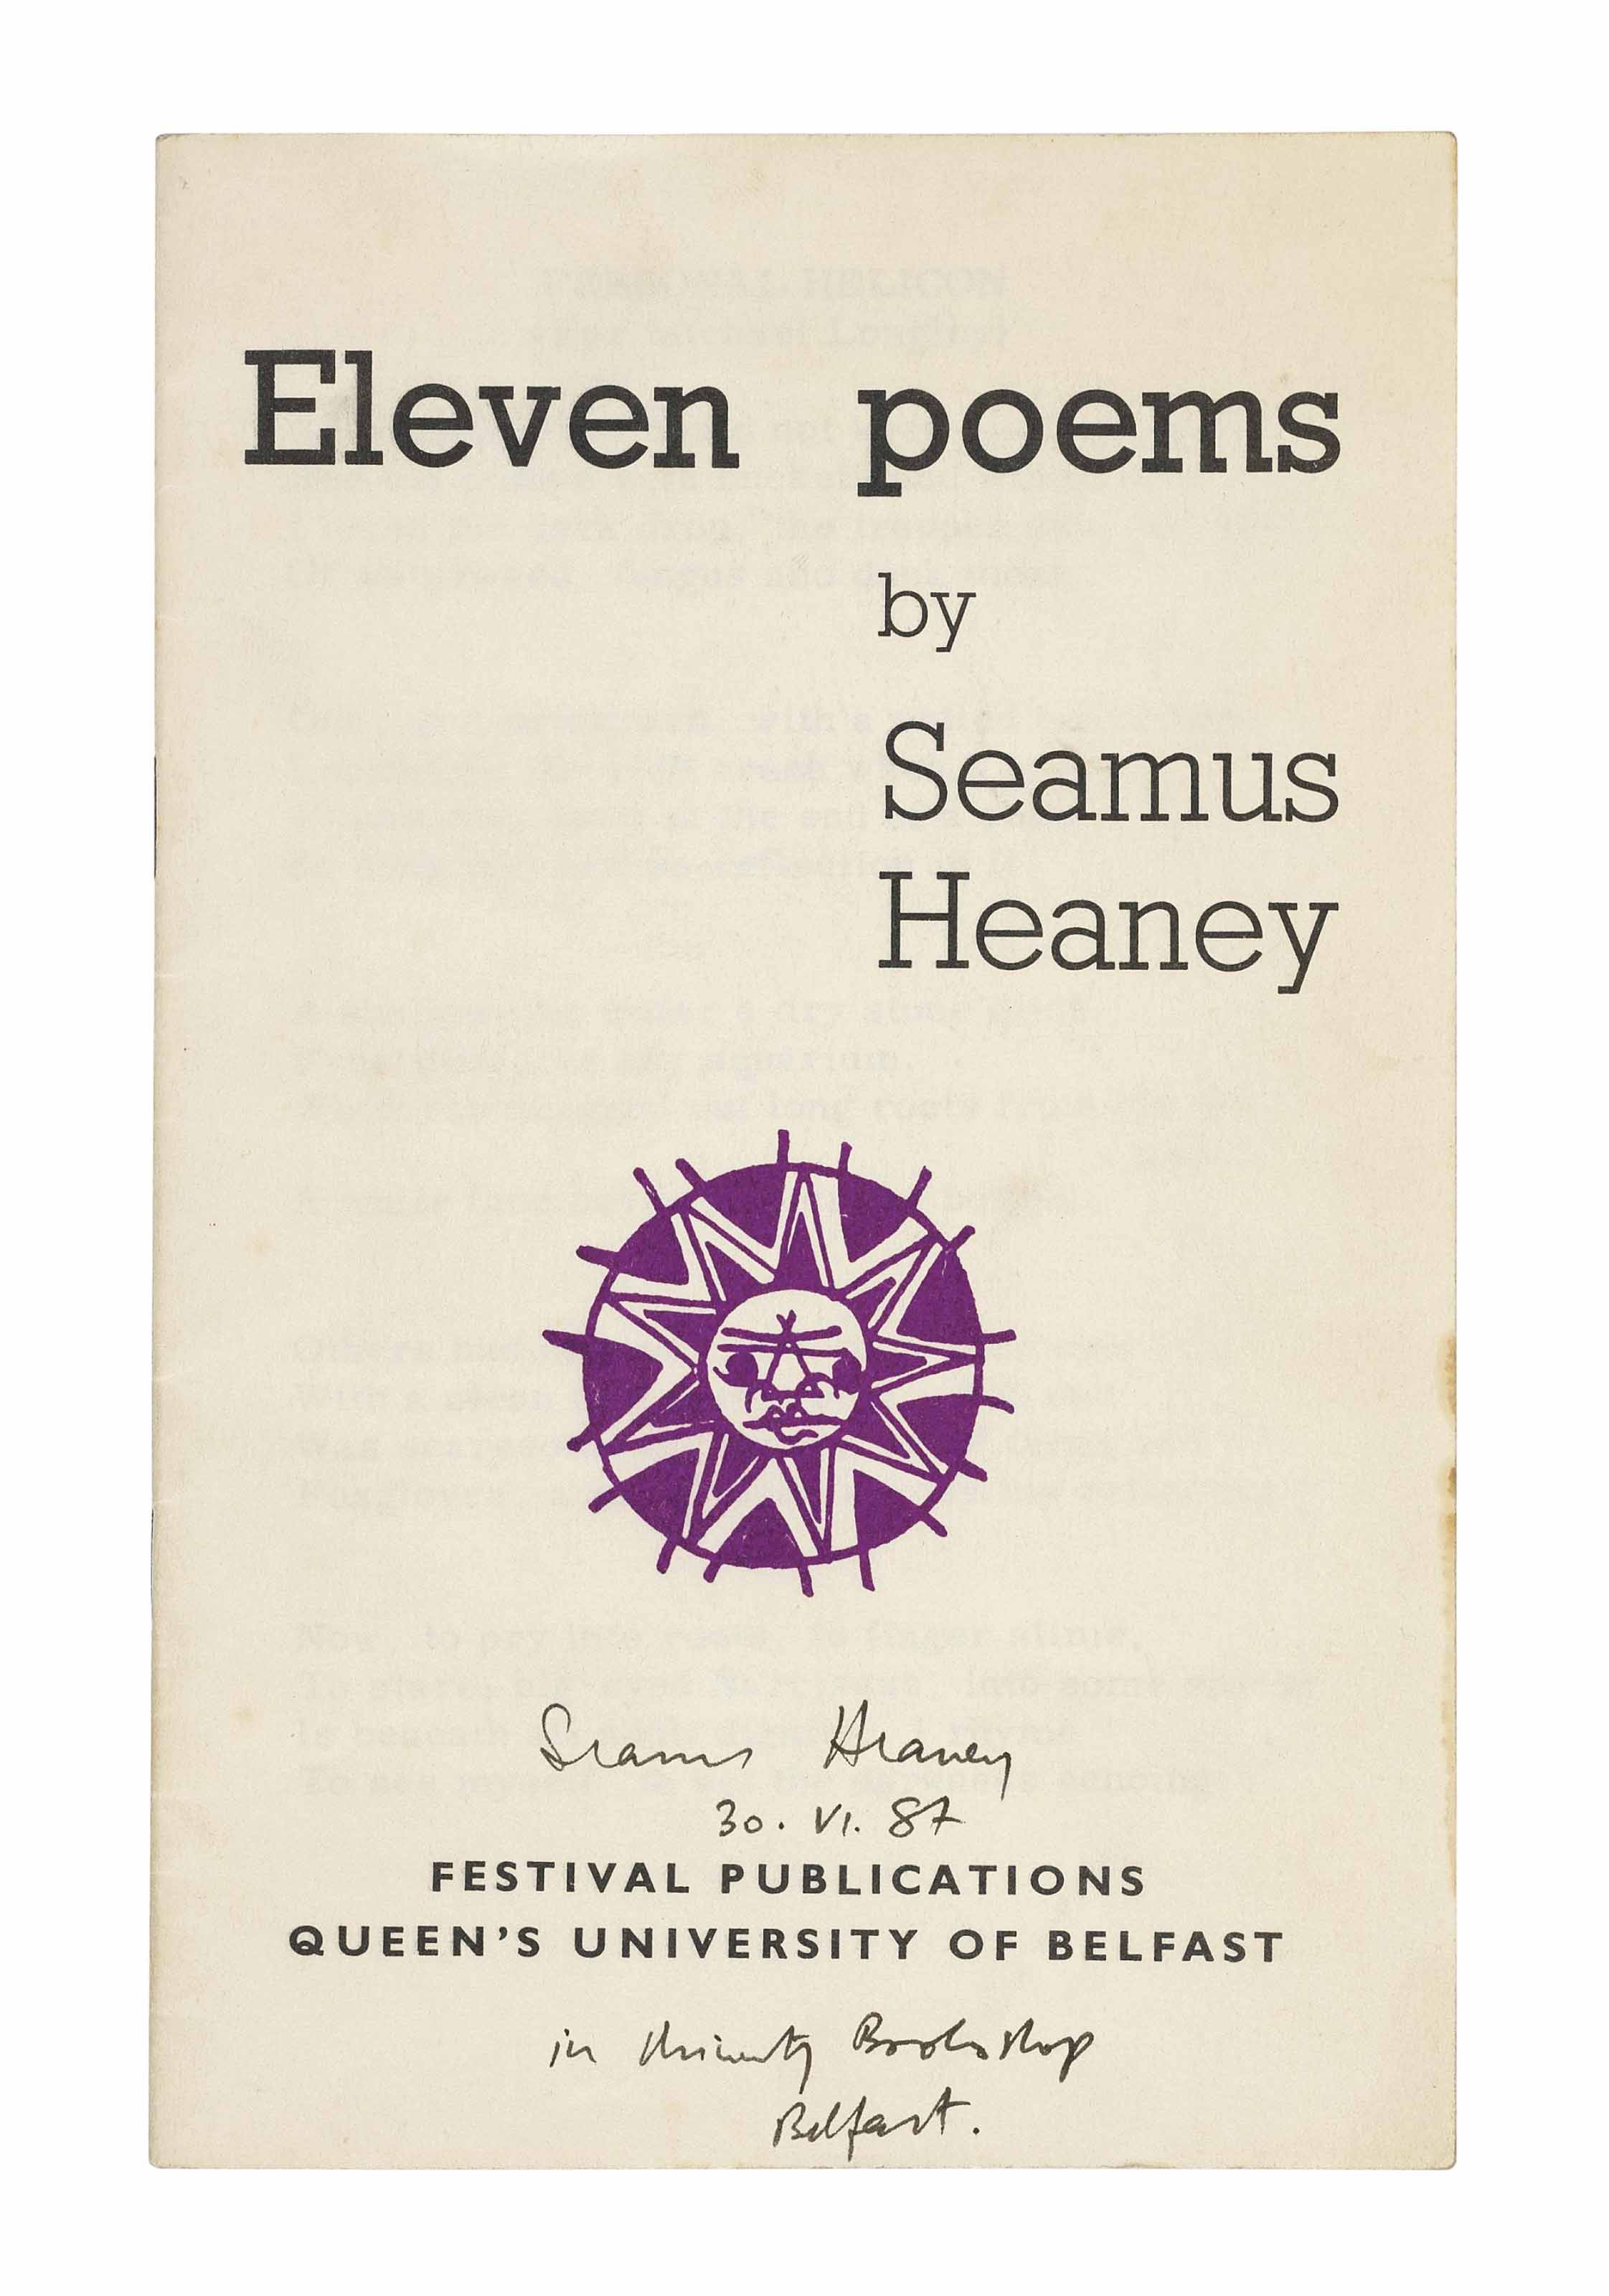 HEANEY, Seamus (b. 1939). Eleven Poems. Belfast: Festival Publications, [1965]. 8° (204 x 130mm). Original printed wrappers (light soiling). Signed by the author.